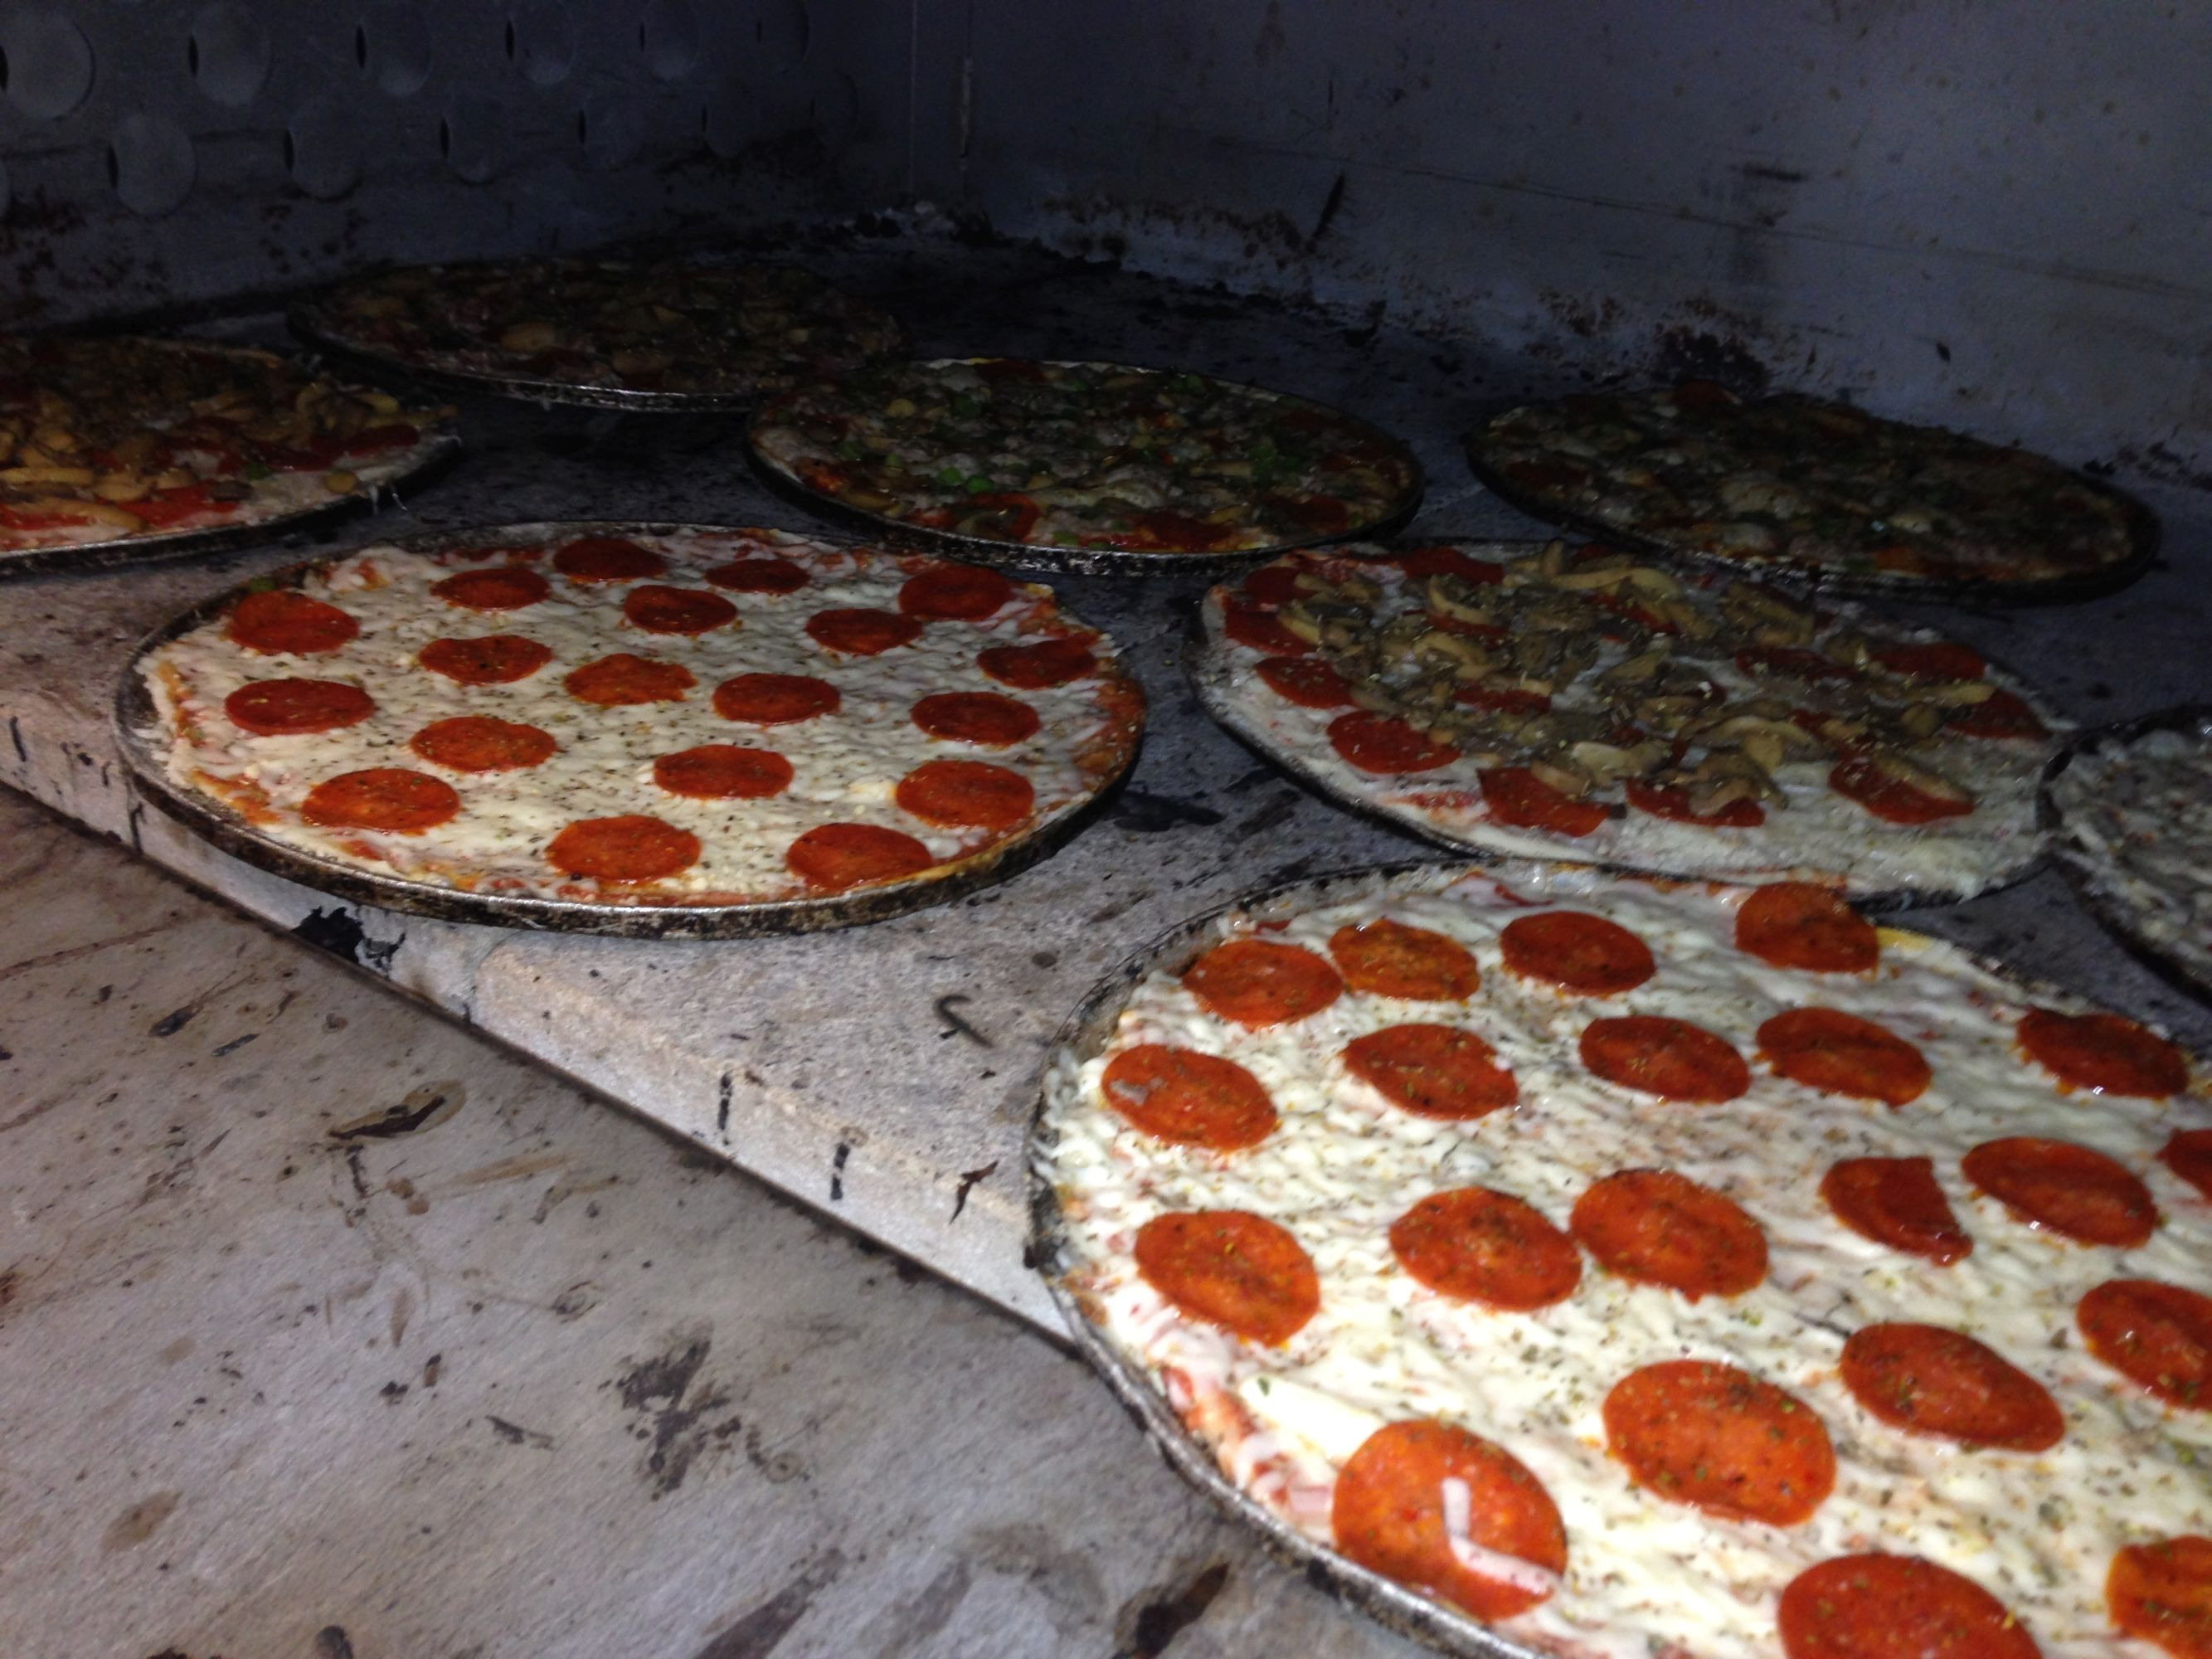 Fricanos Baking in the Oven 3 Pizza.jpg